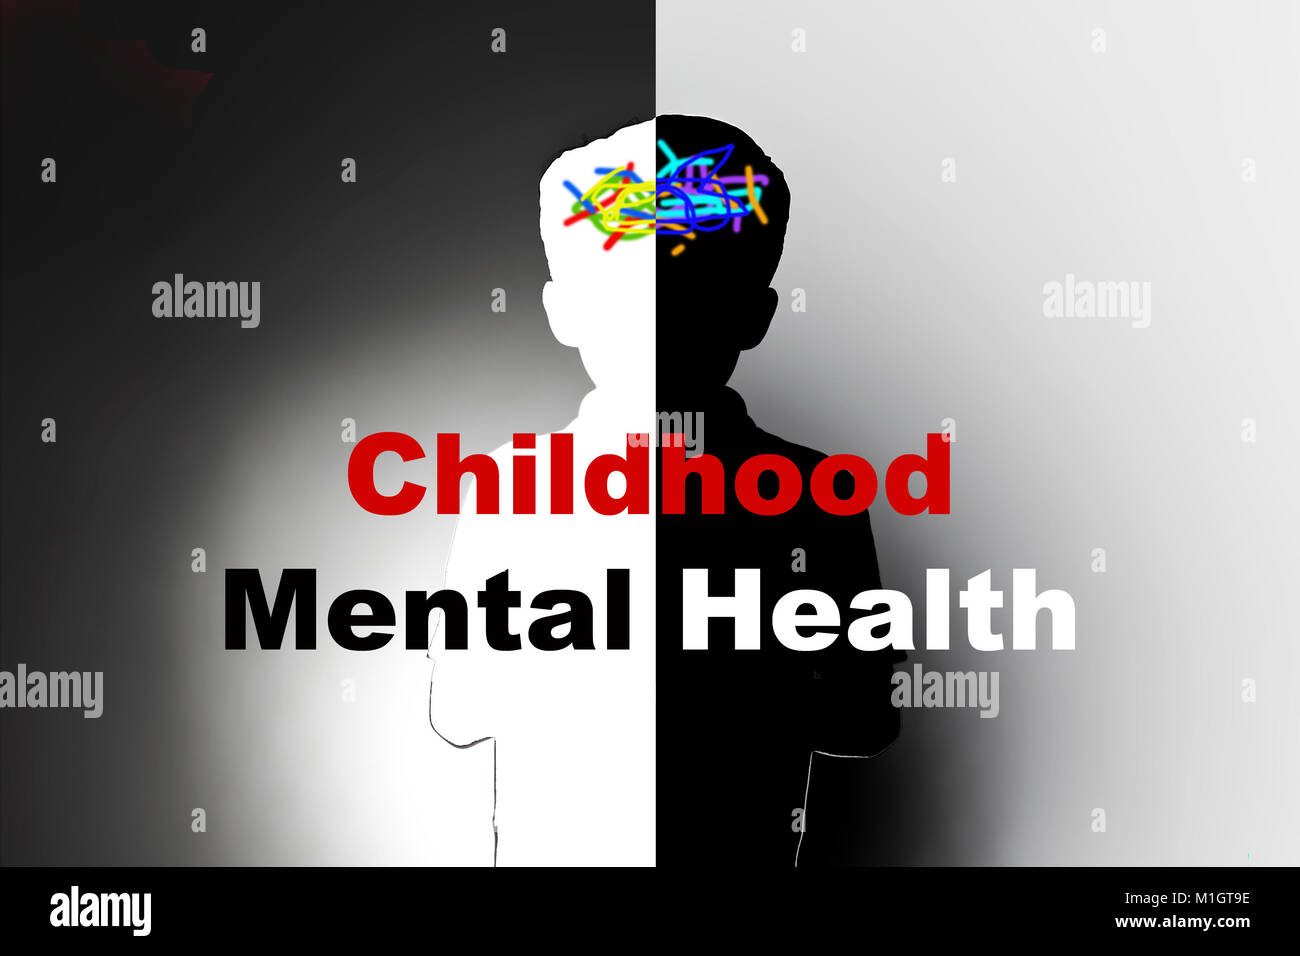 childhood mental health, safeguarding children and social care, mental illness - Stock Image